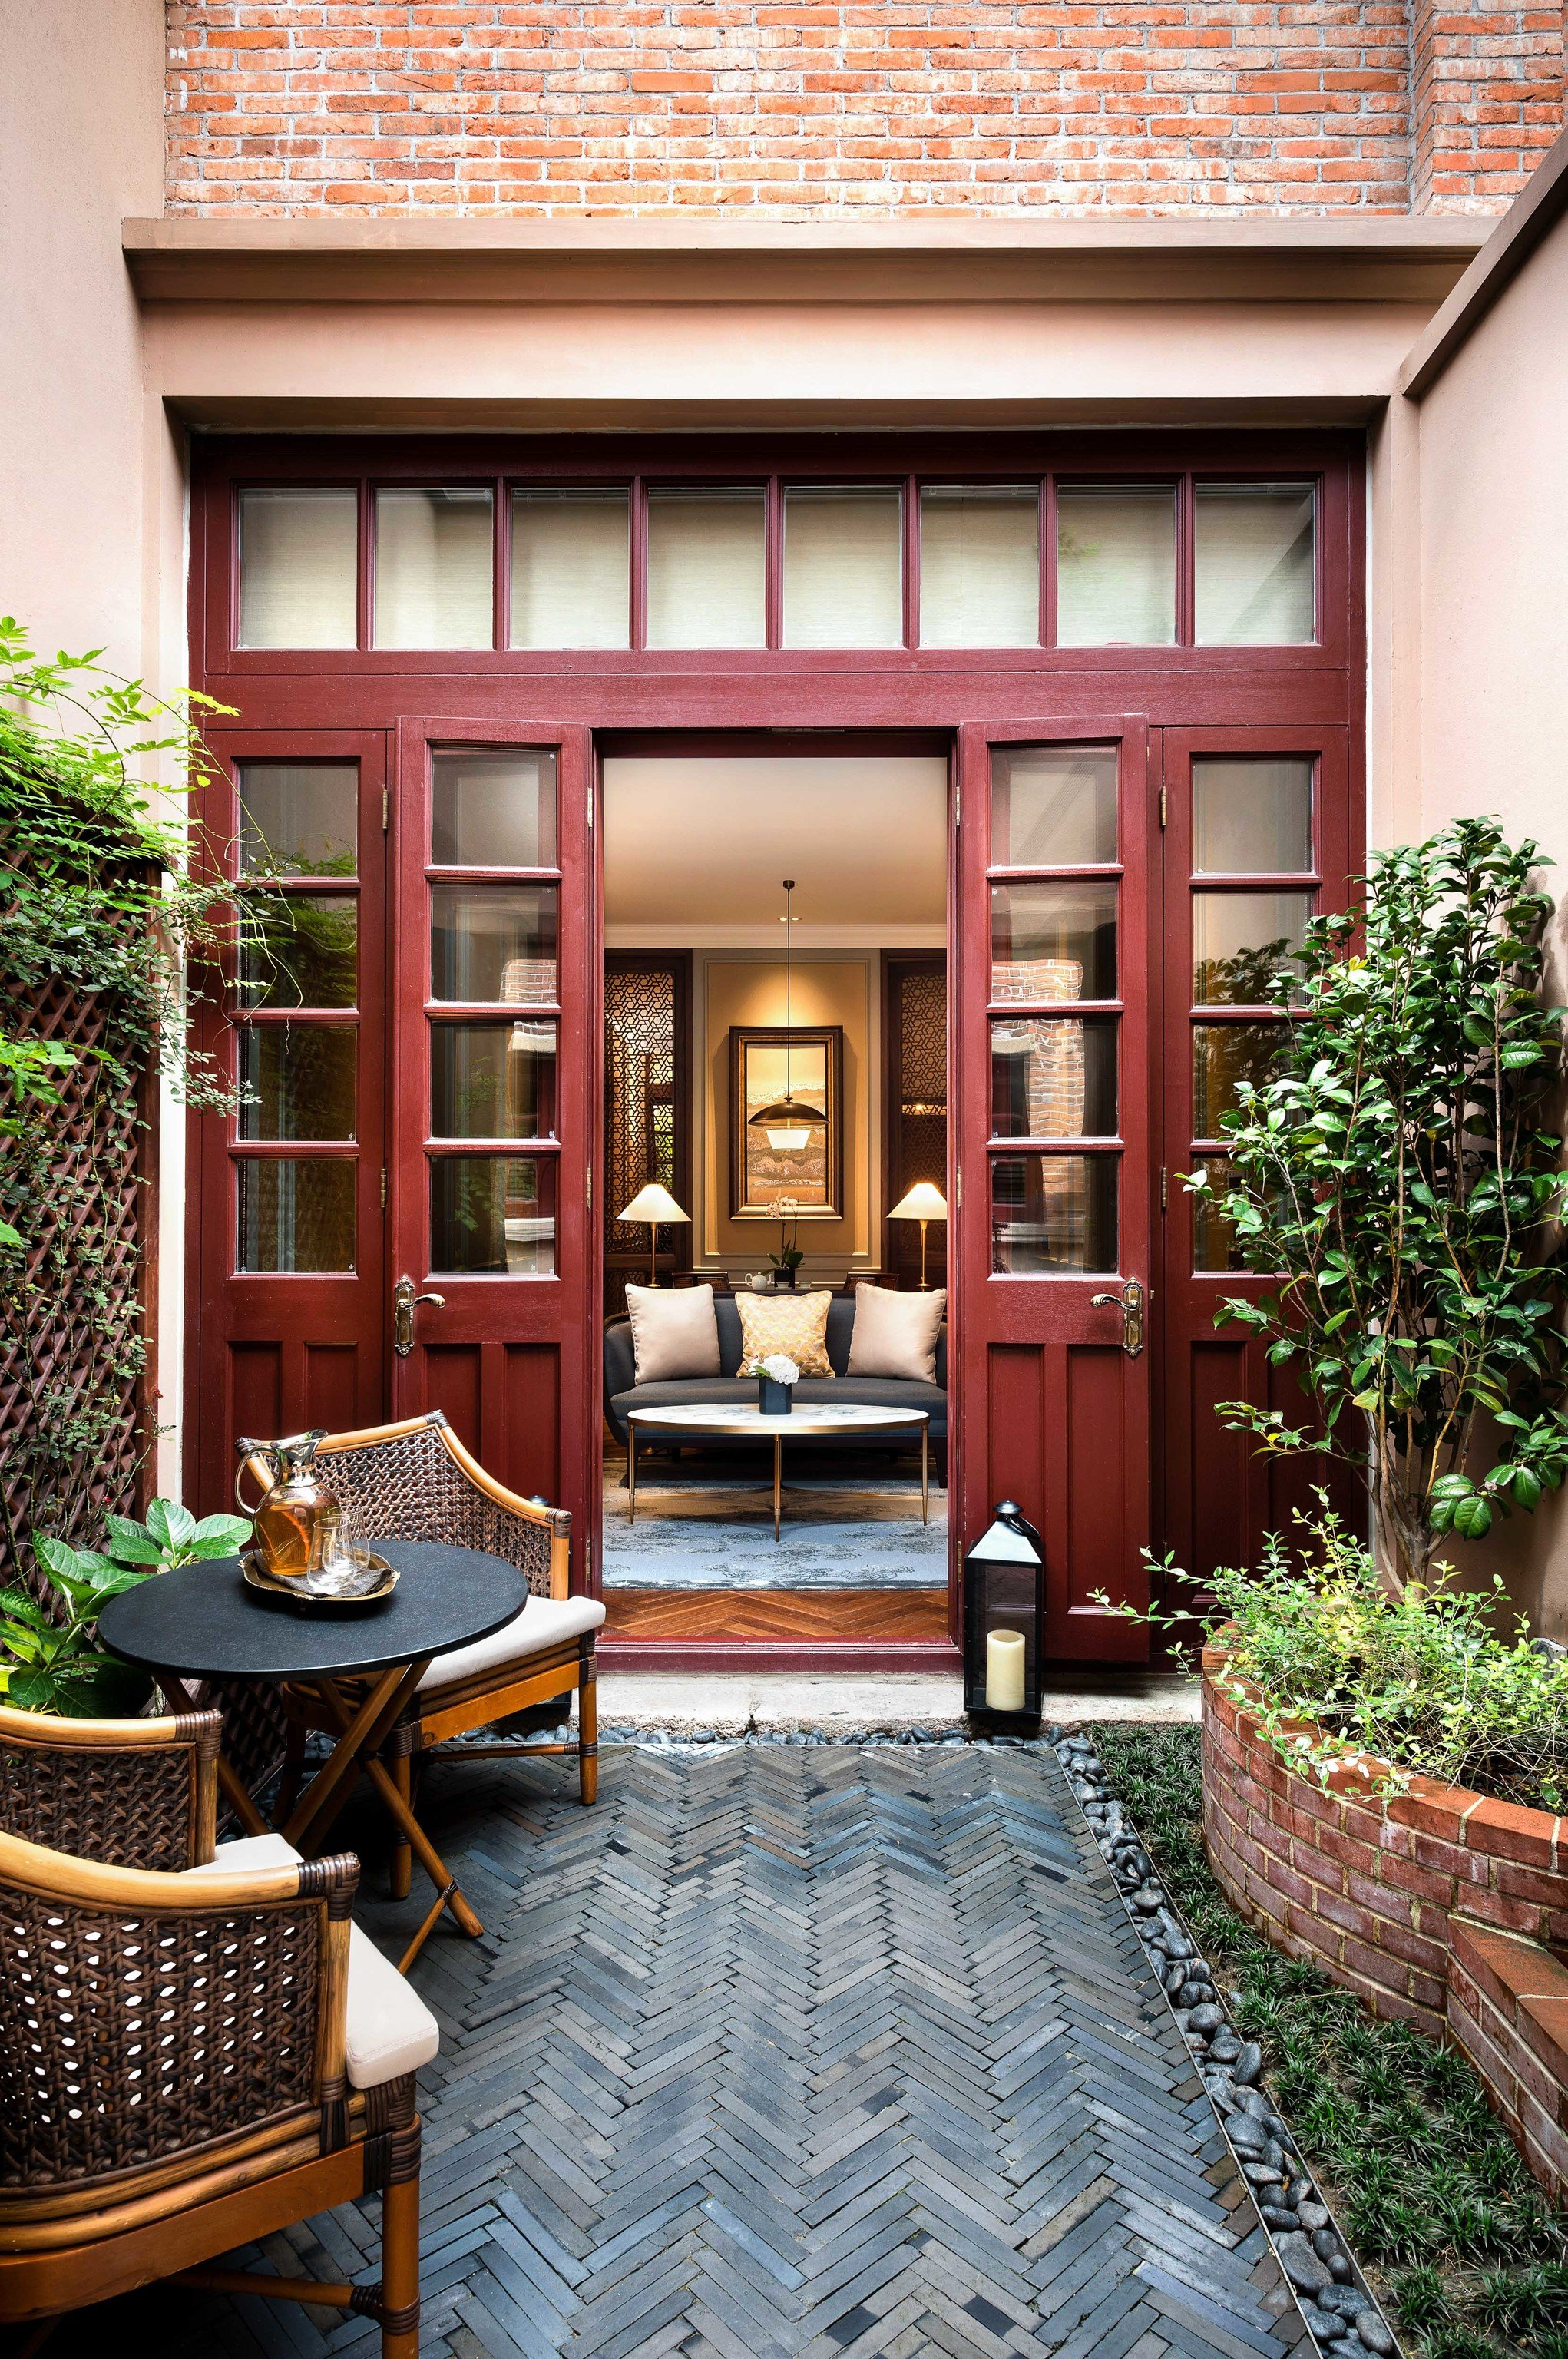 Boutique Hotels Luxury Travel outdoor ground building chair house home interior design Courtyard real estate facade window outdoor structure door Lobby estate Patio furniture stone